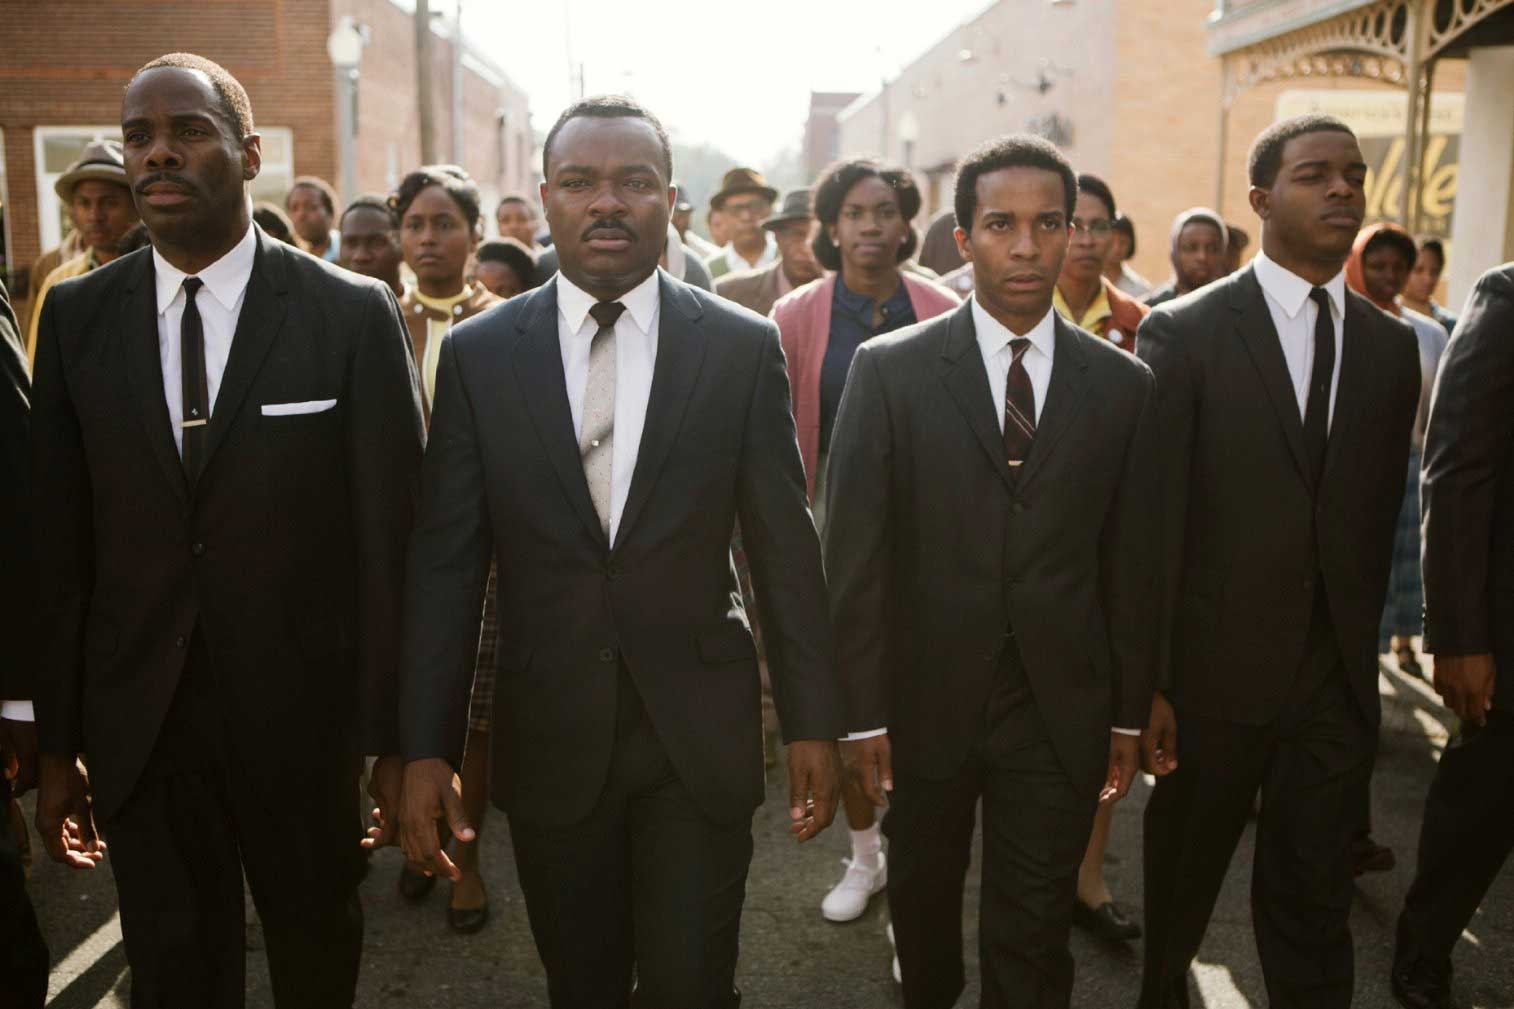 selma-the-movie-2014